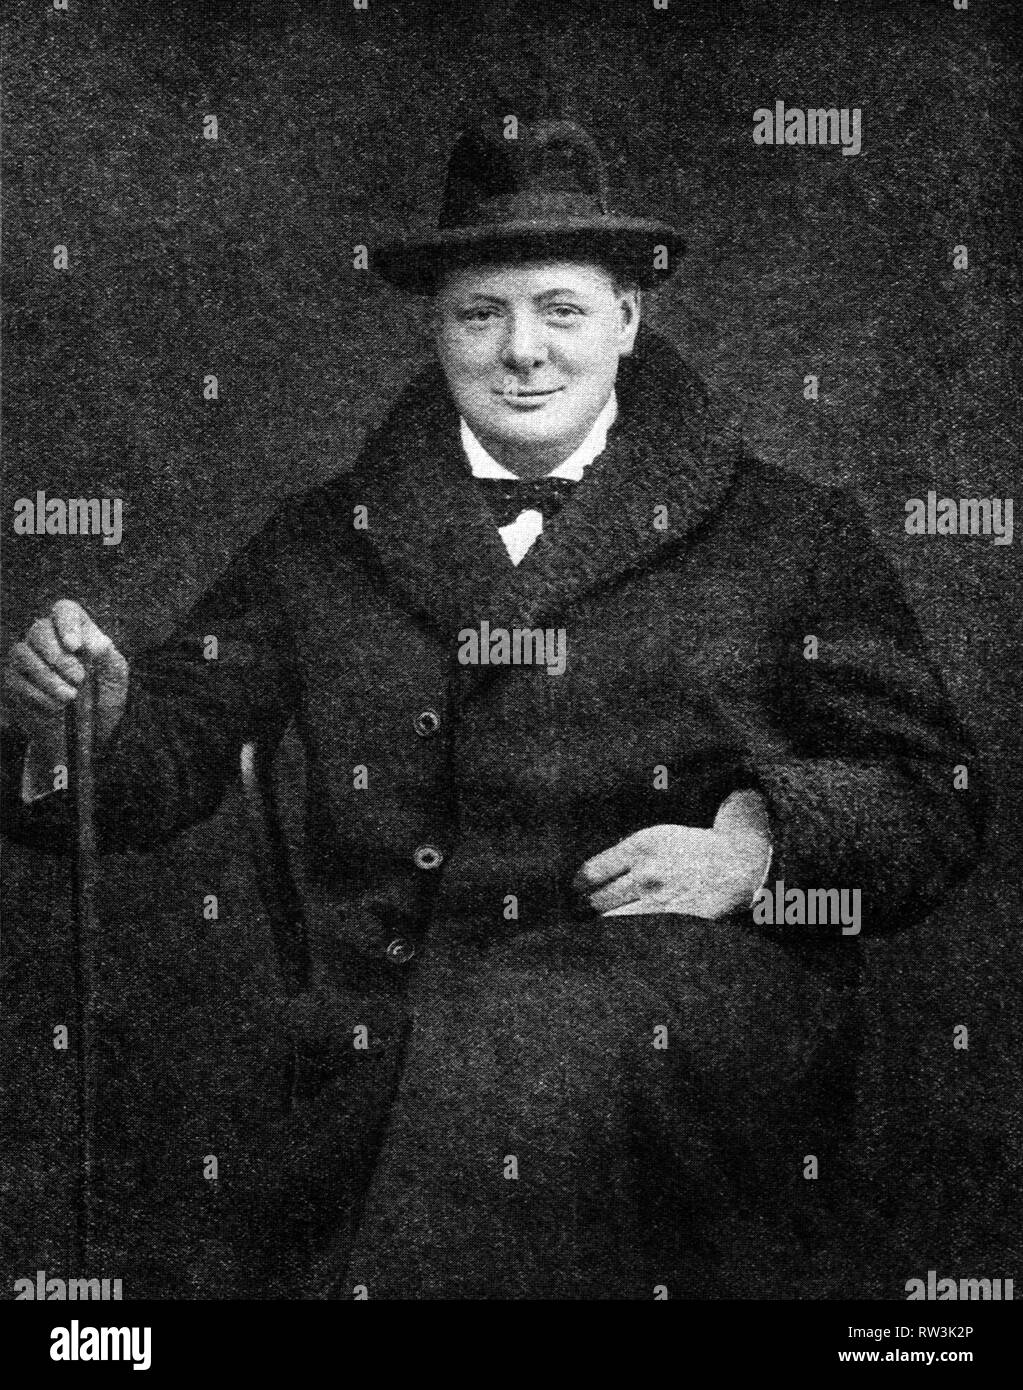 Winston Churchill as Chancellor of the Exchequer. - Stock Image